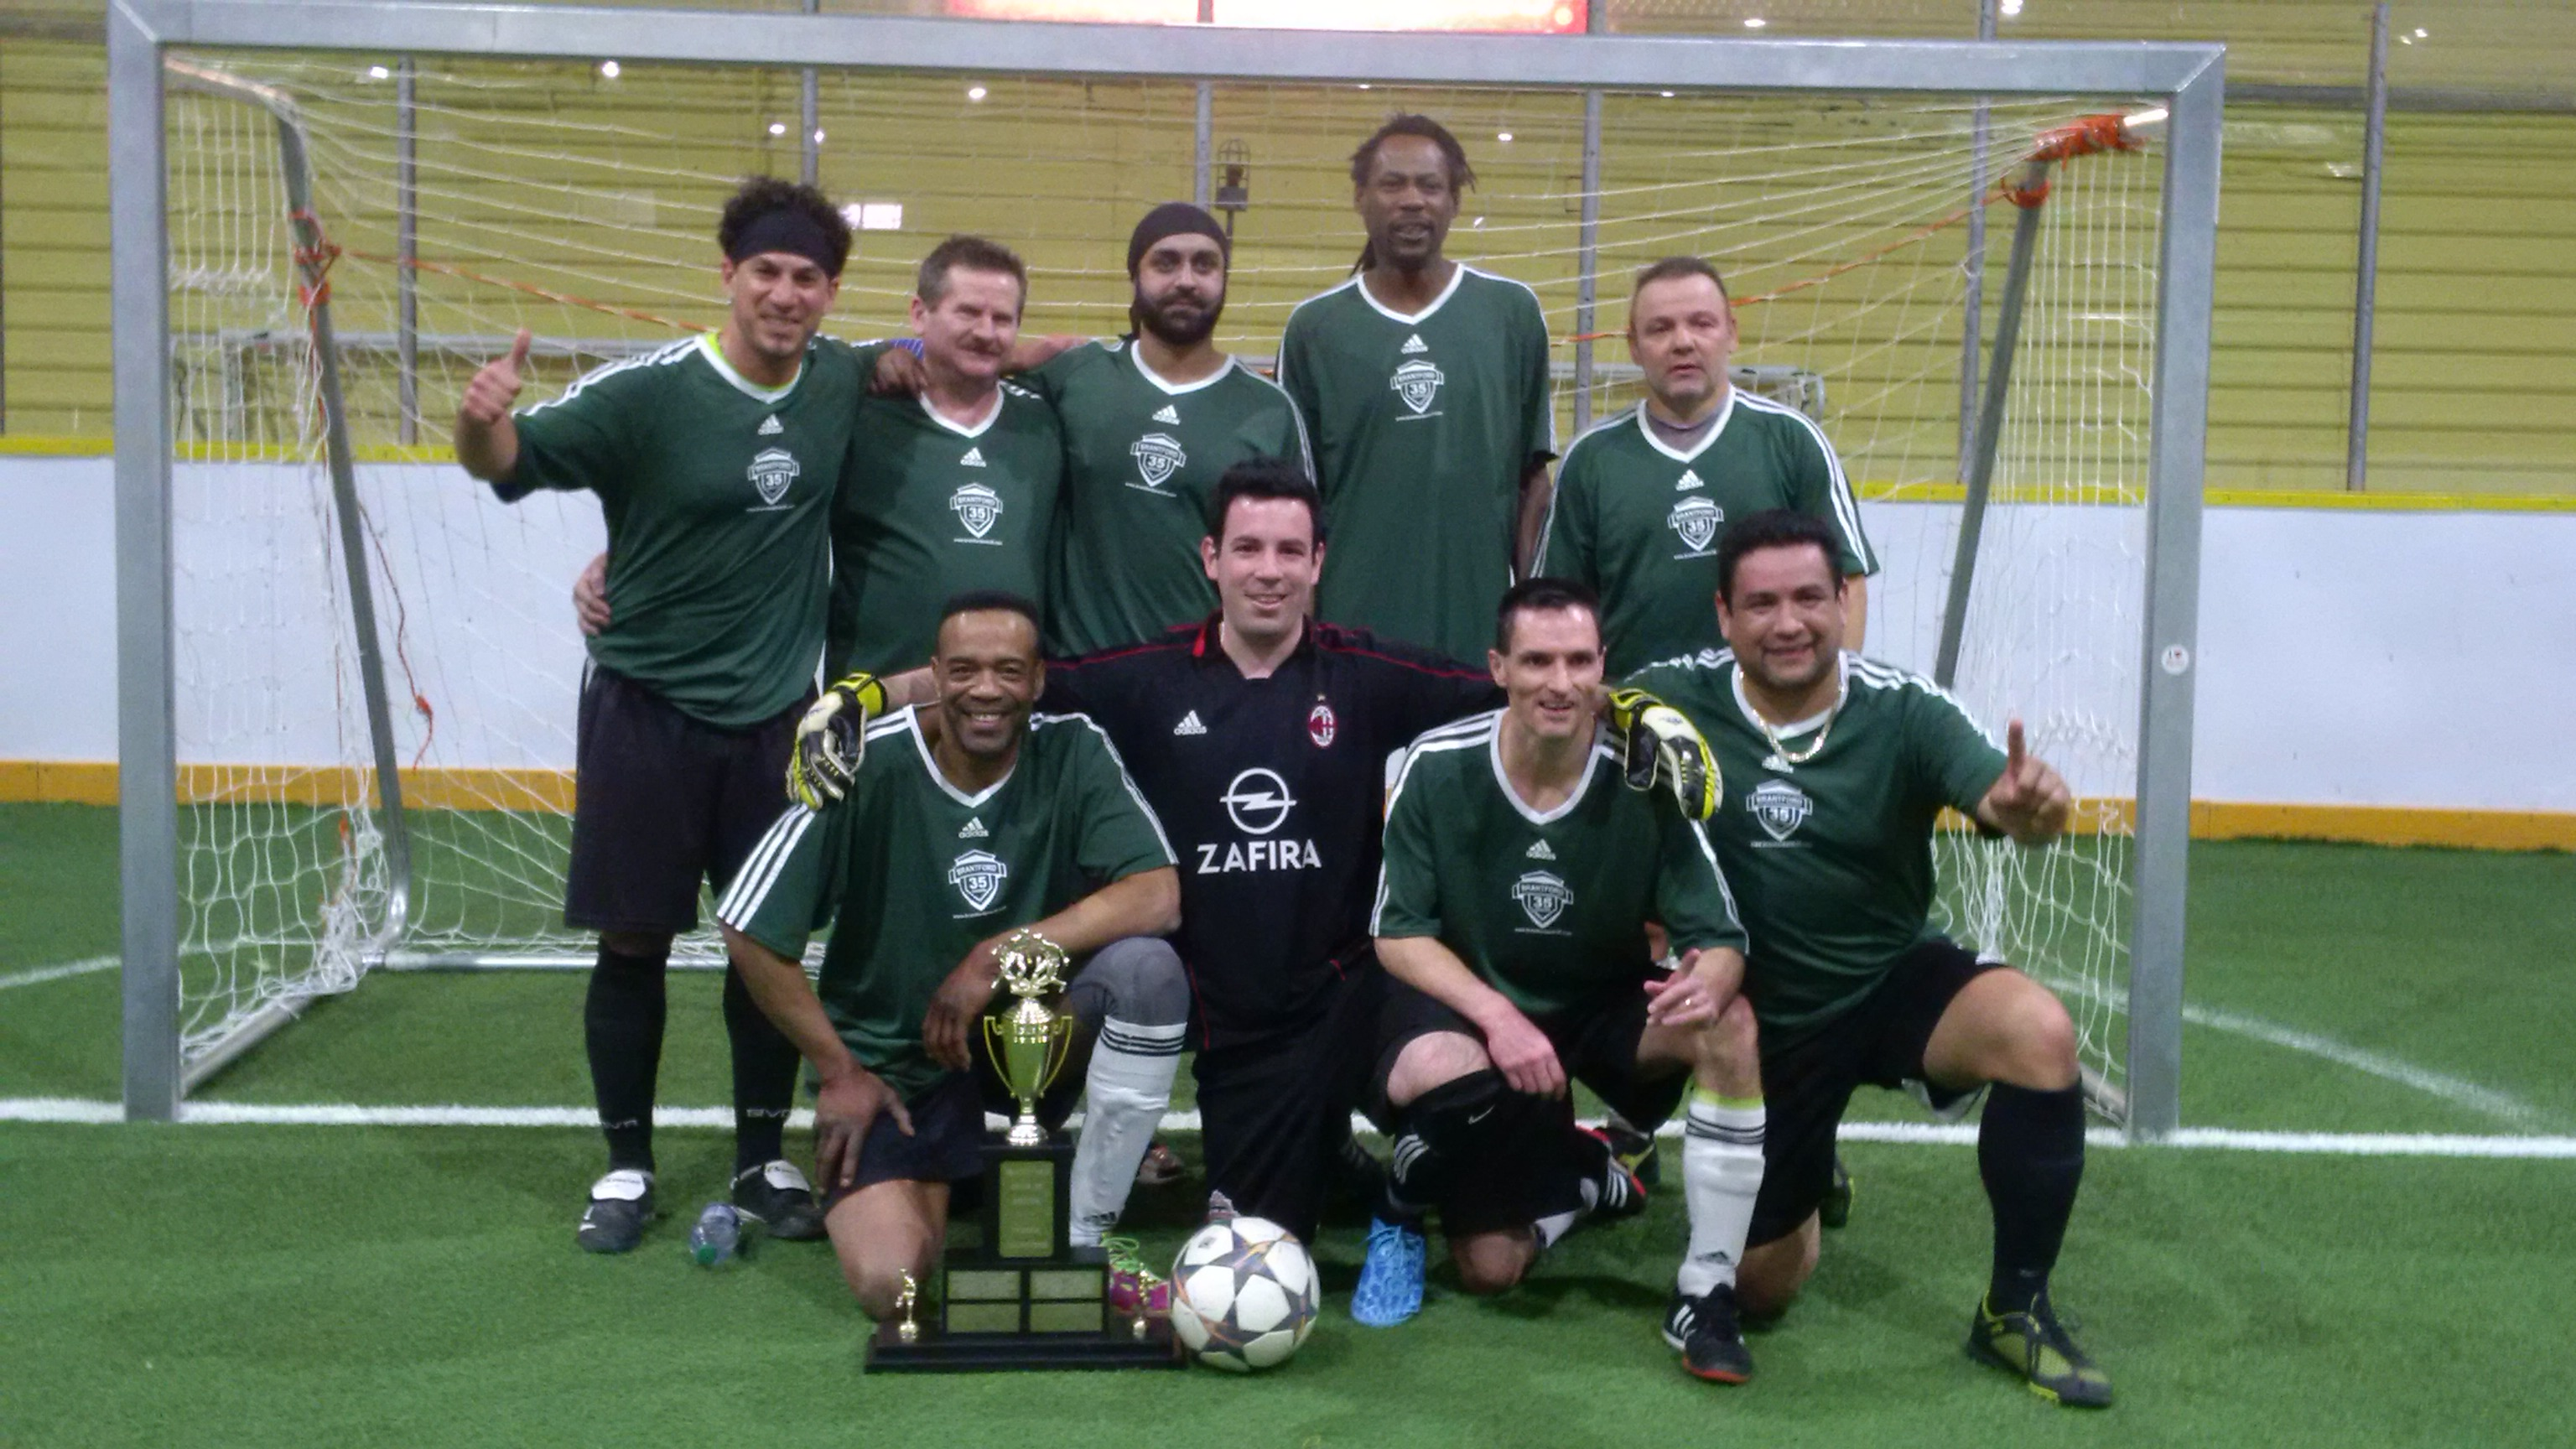 2015 Indoor Playoff Champs